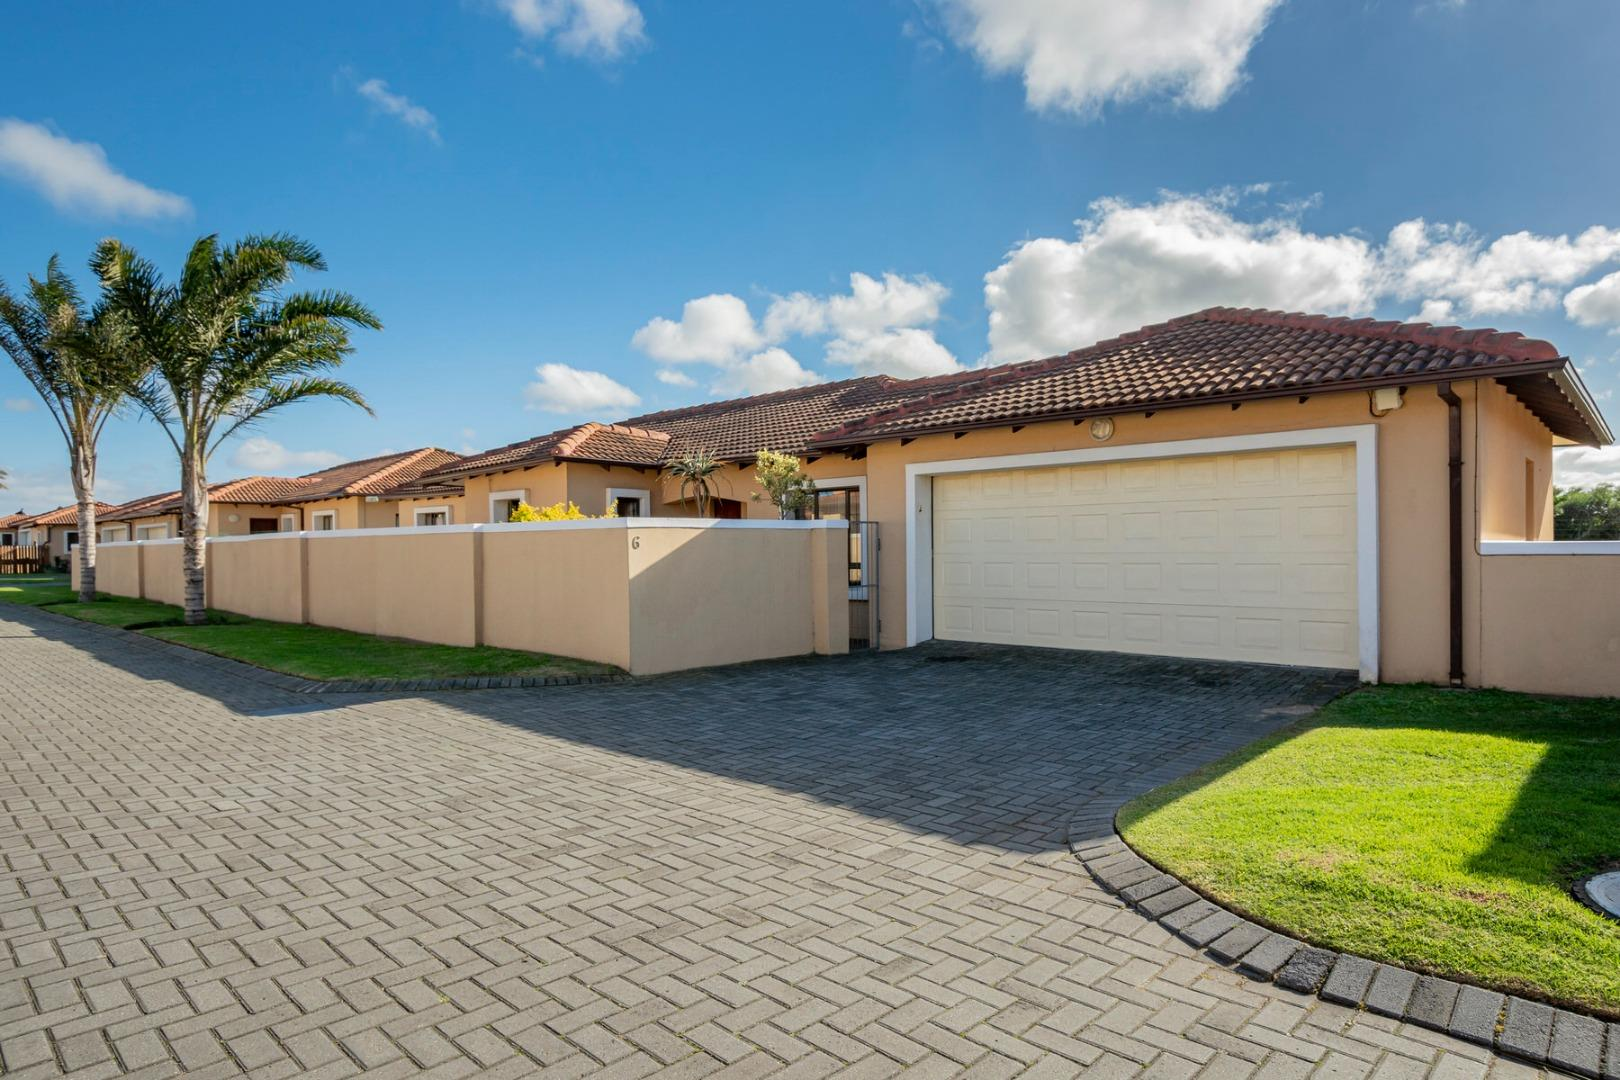 3 Bedroom Townhouse for Sale in Lorraine, Port Elizabeth - Eastern Cape